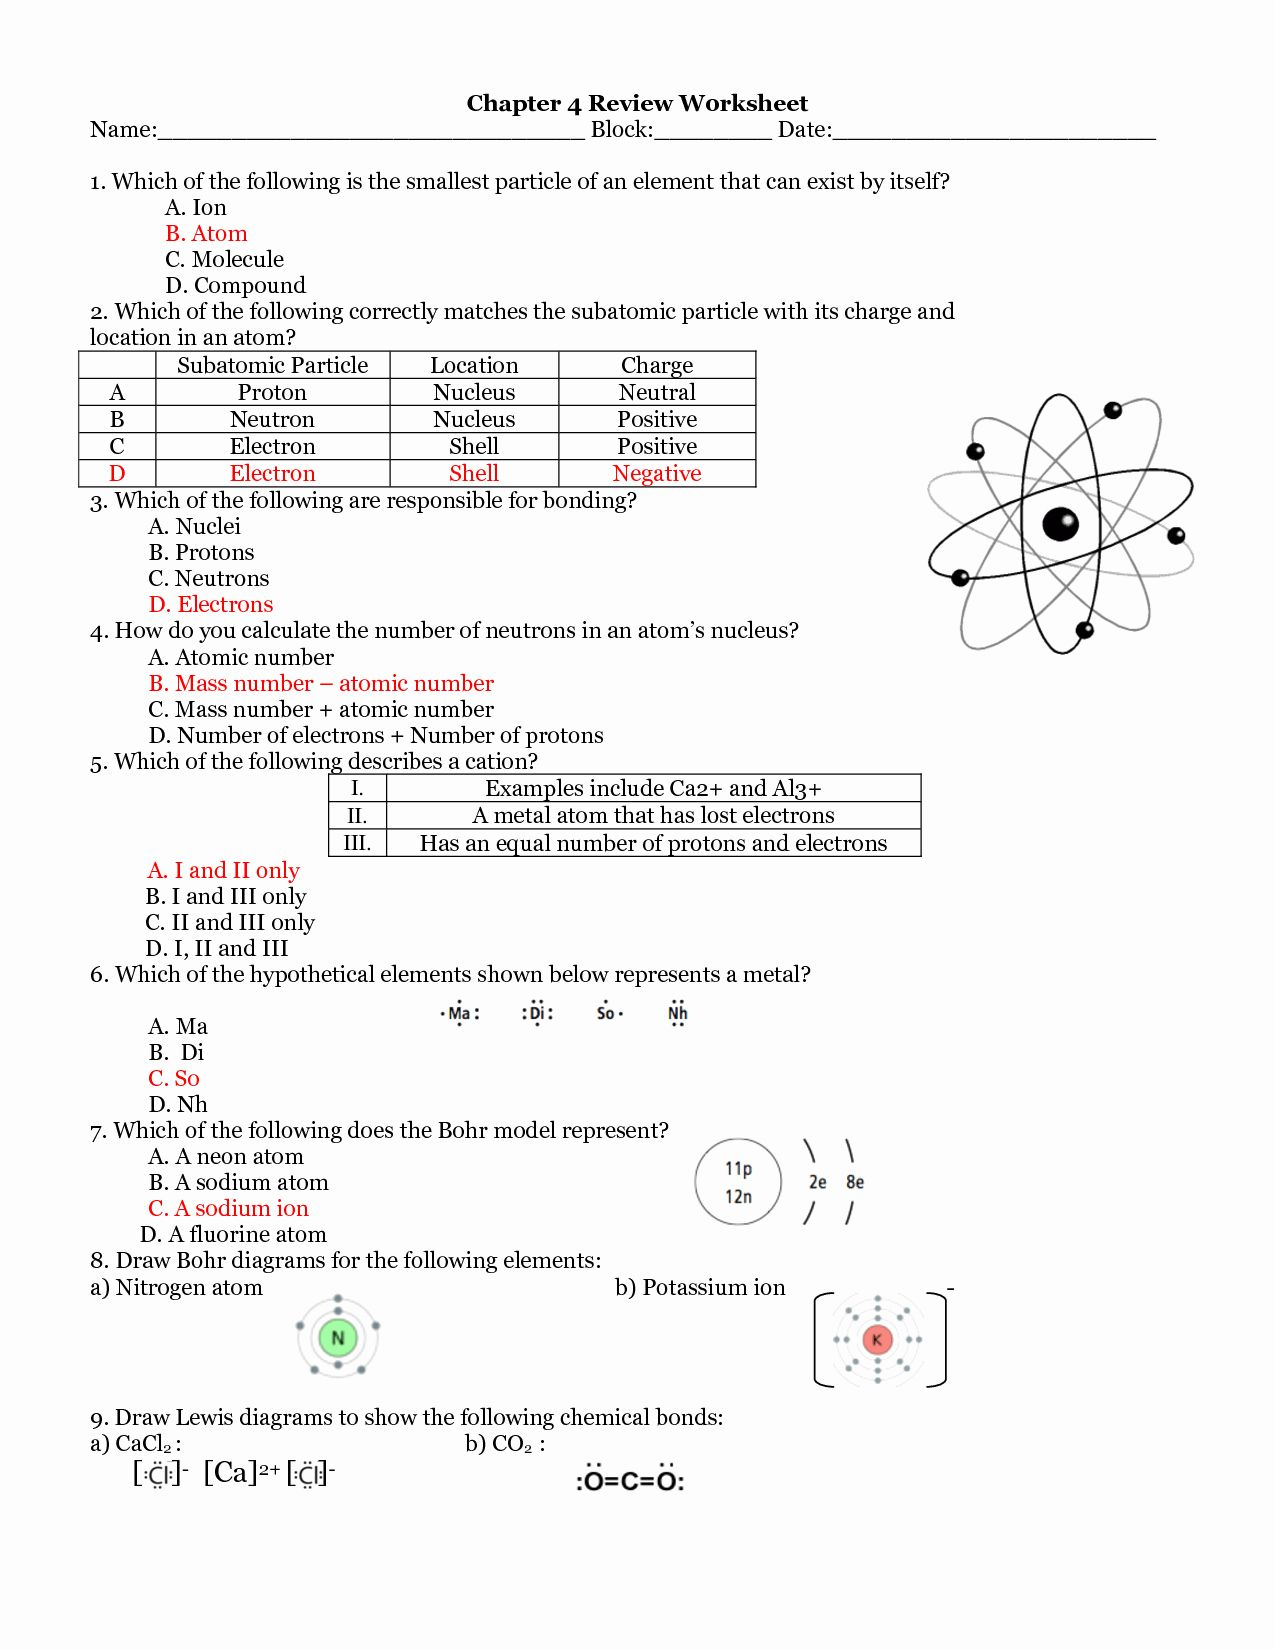 50 Atoms And Ions Worksheet Answers In